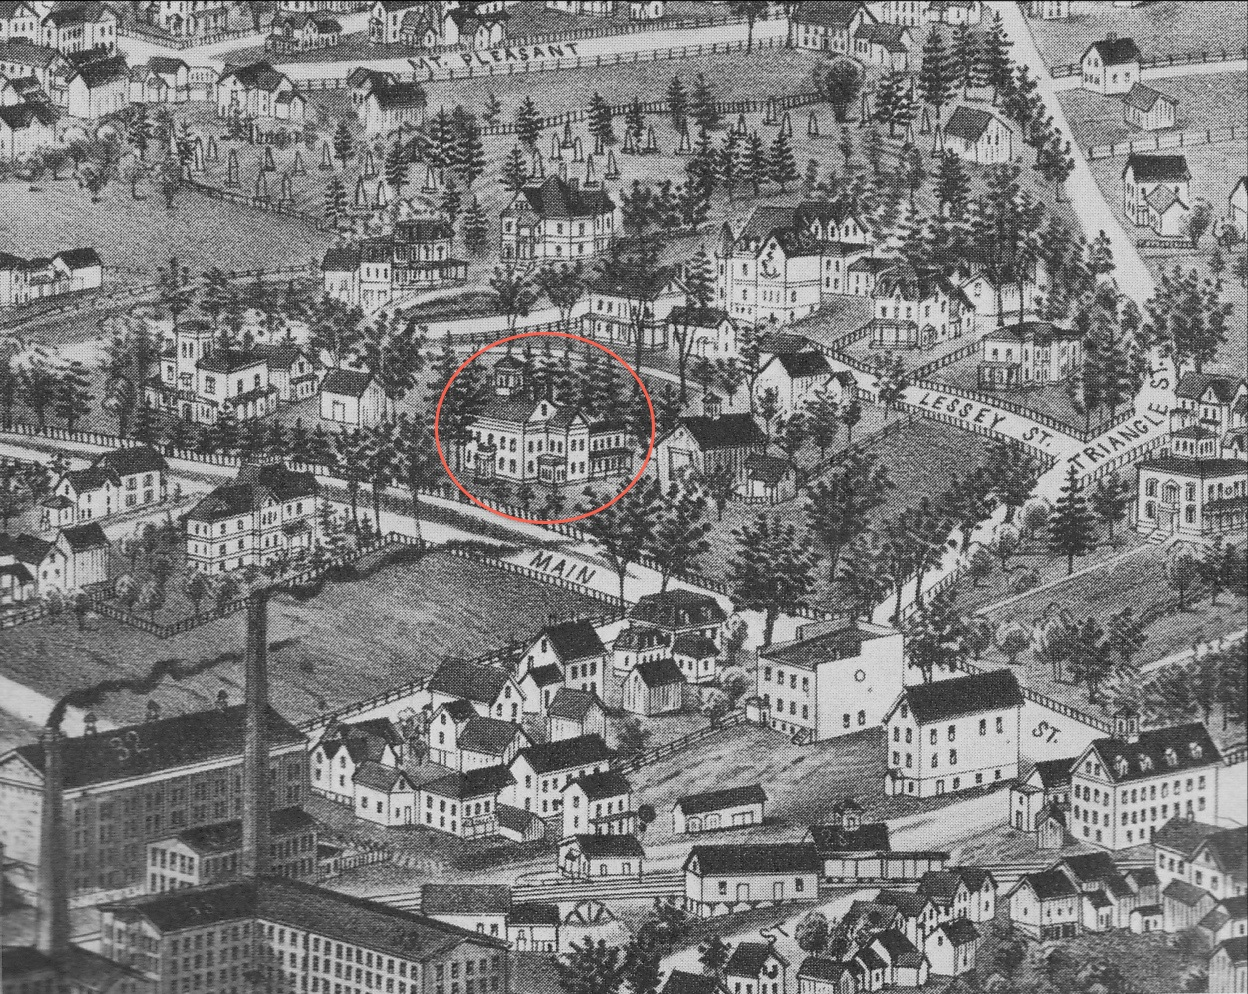 Figure 2. Close-up of Lucien R. Burleigh's bird's eye view of Amherst, made ca. 1886. (Jones Library Special Collections, Amherst, Massachusetts.)